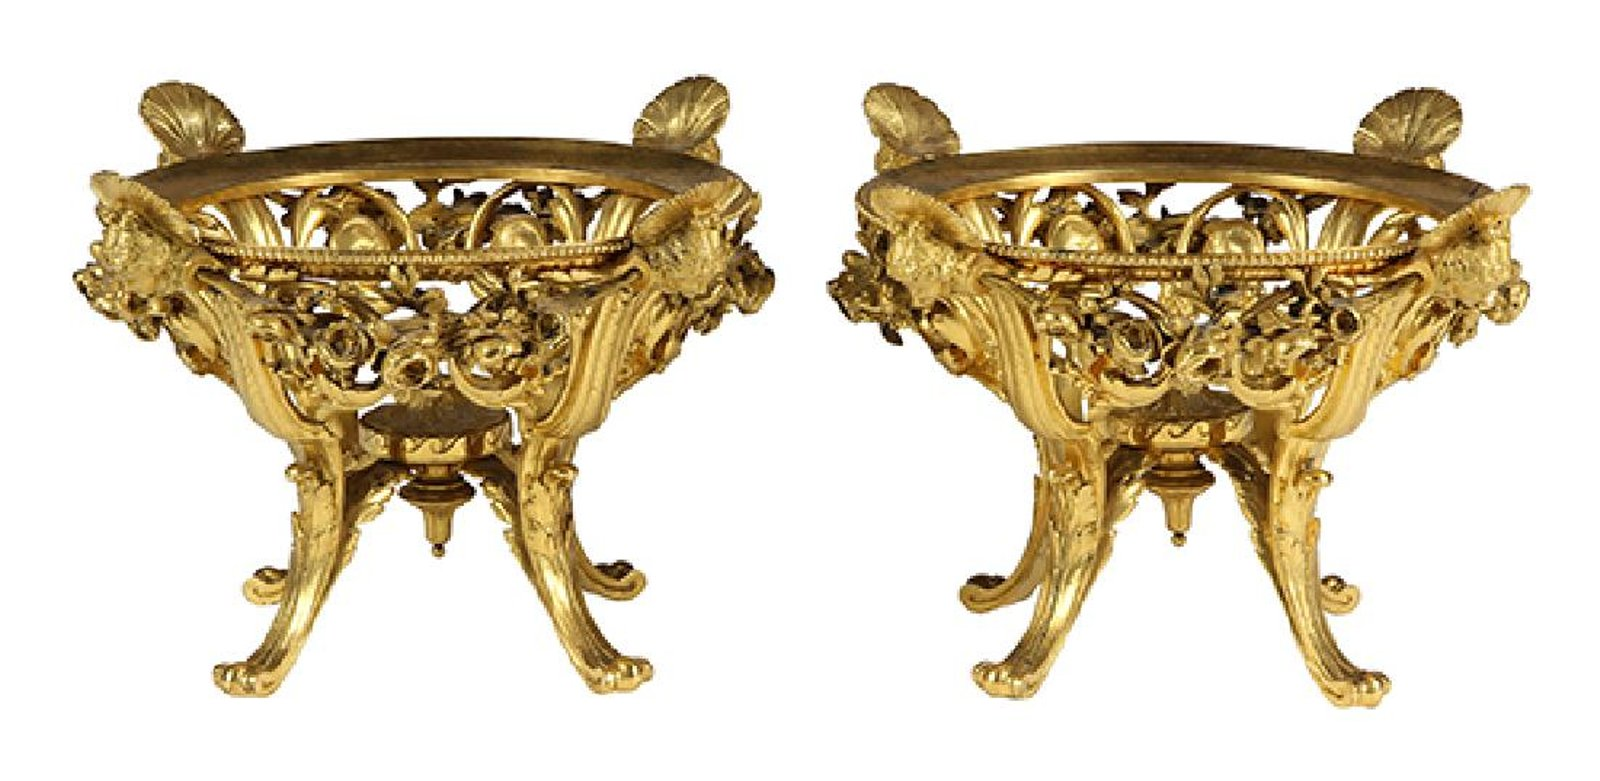 Pair of French Ferdinand Barbedienne Gilt Bronze Ormolu Center Pieces Bowls